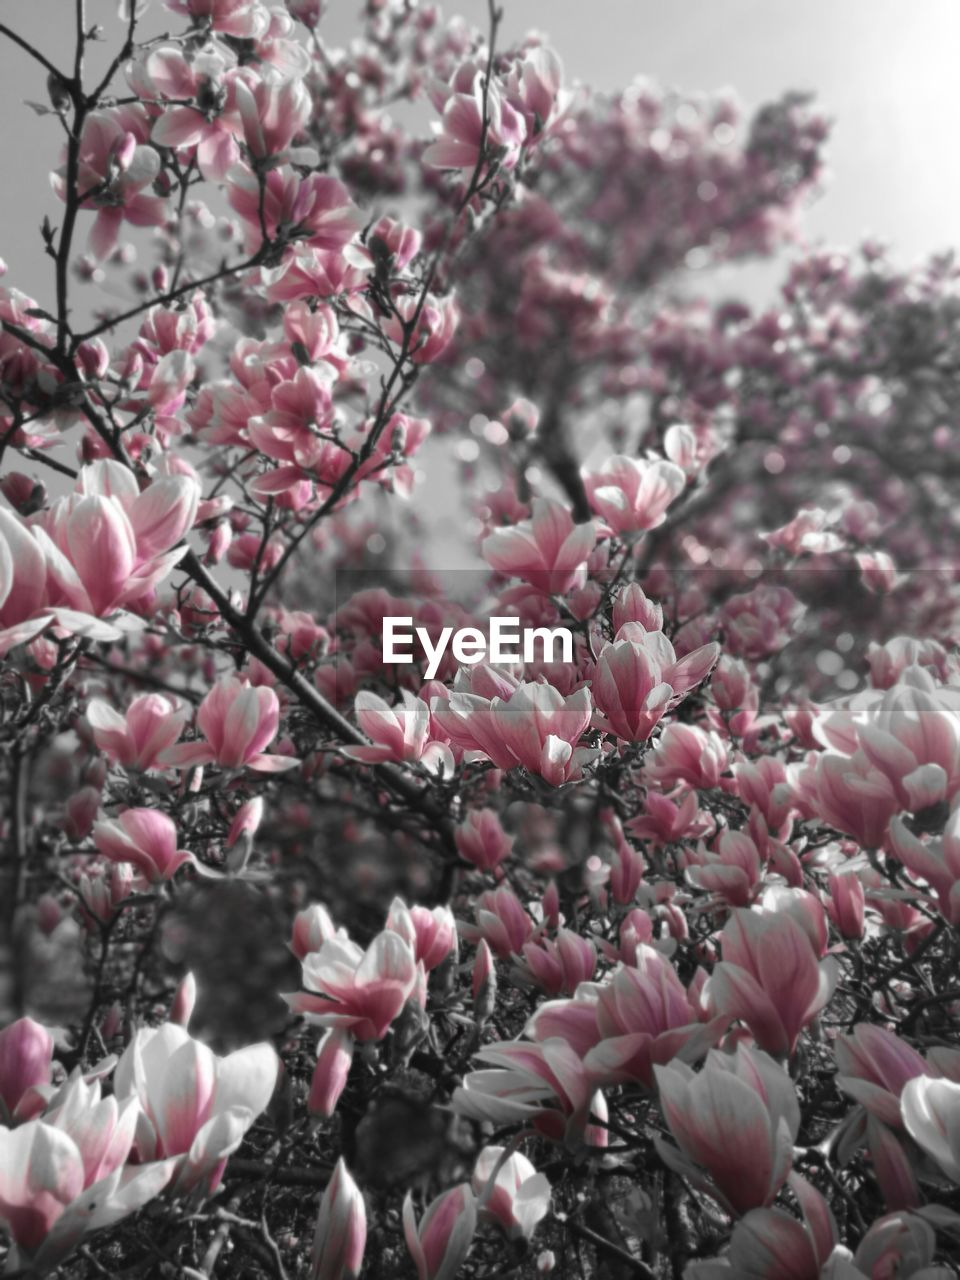 flower, flowering plant, plant, freshness, pink color, beauty in nature, fragility, growth, vulnerability, tree, branch, blossom, springtime, nature, close-up, no people, day, selective focus, outdoors, petal, flower head, cherry blossom, spring, cherry tree, lilac